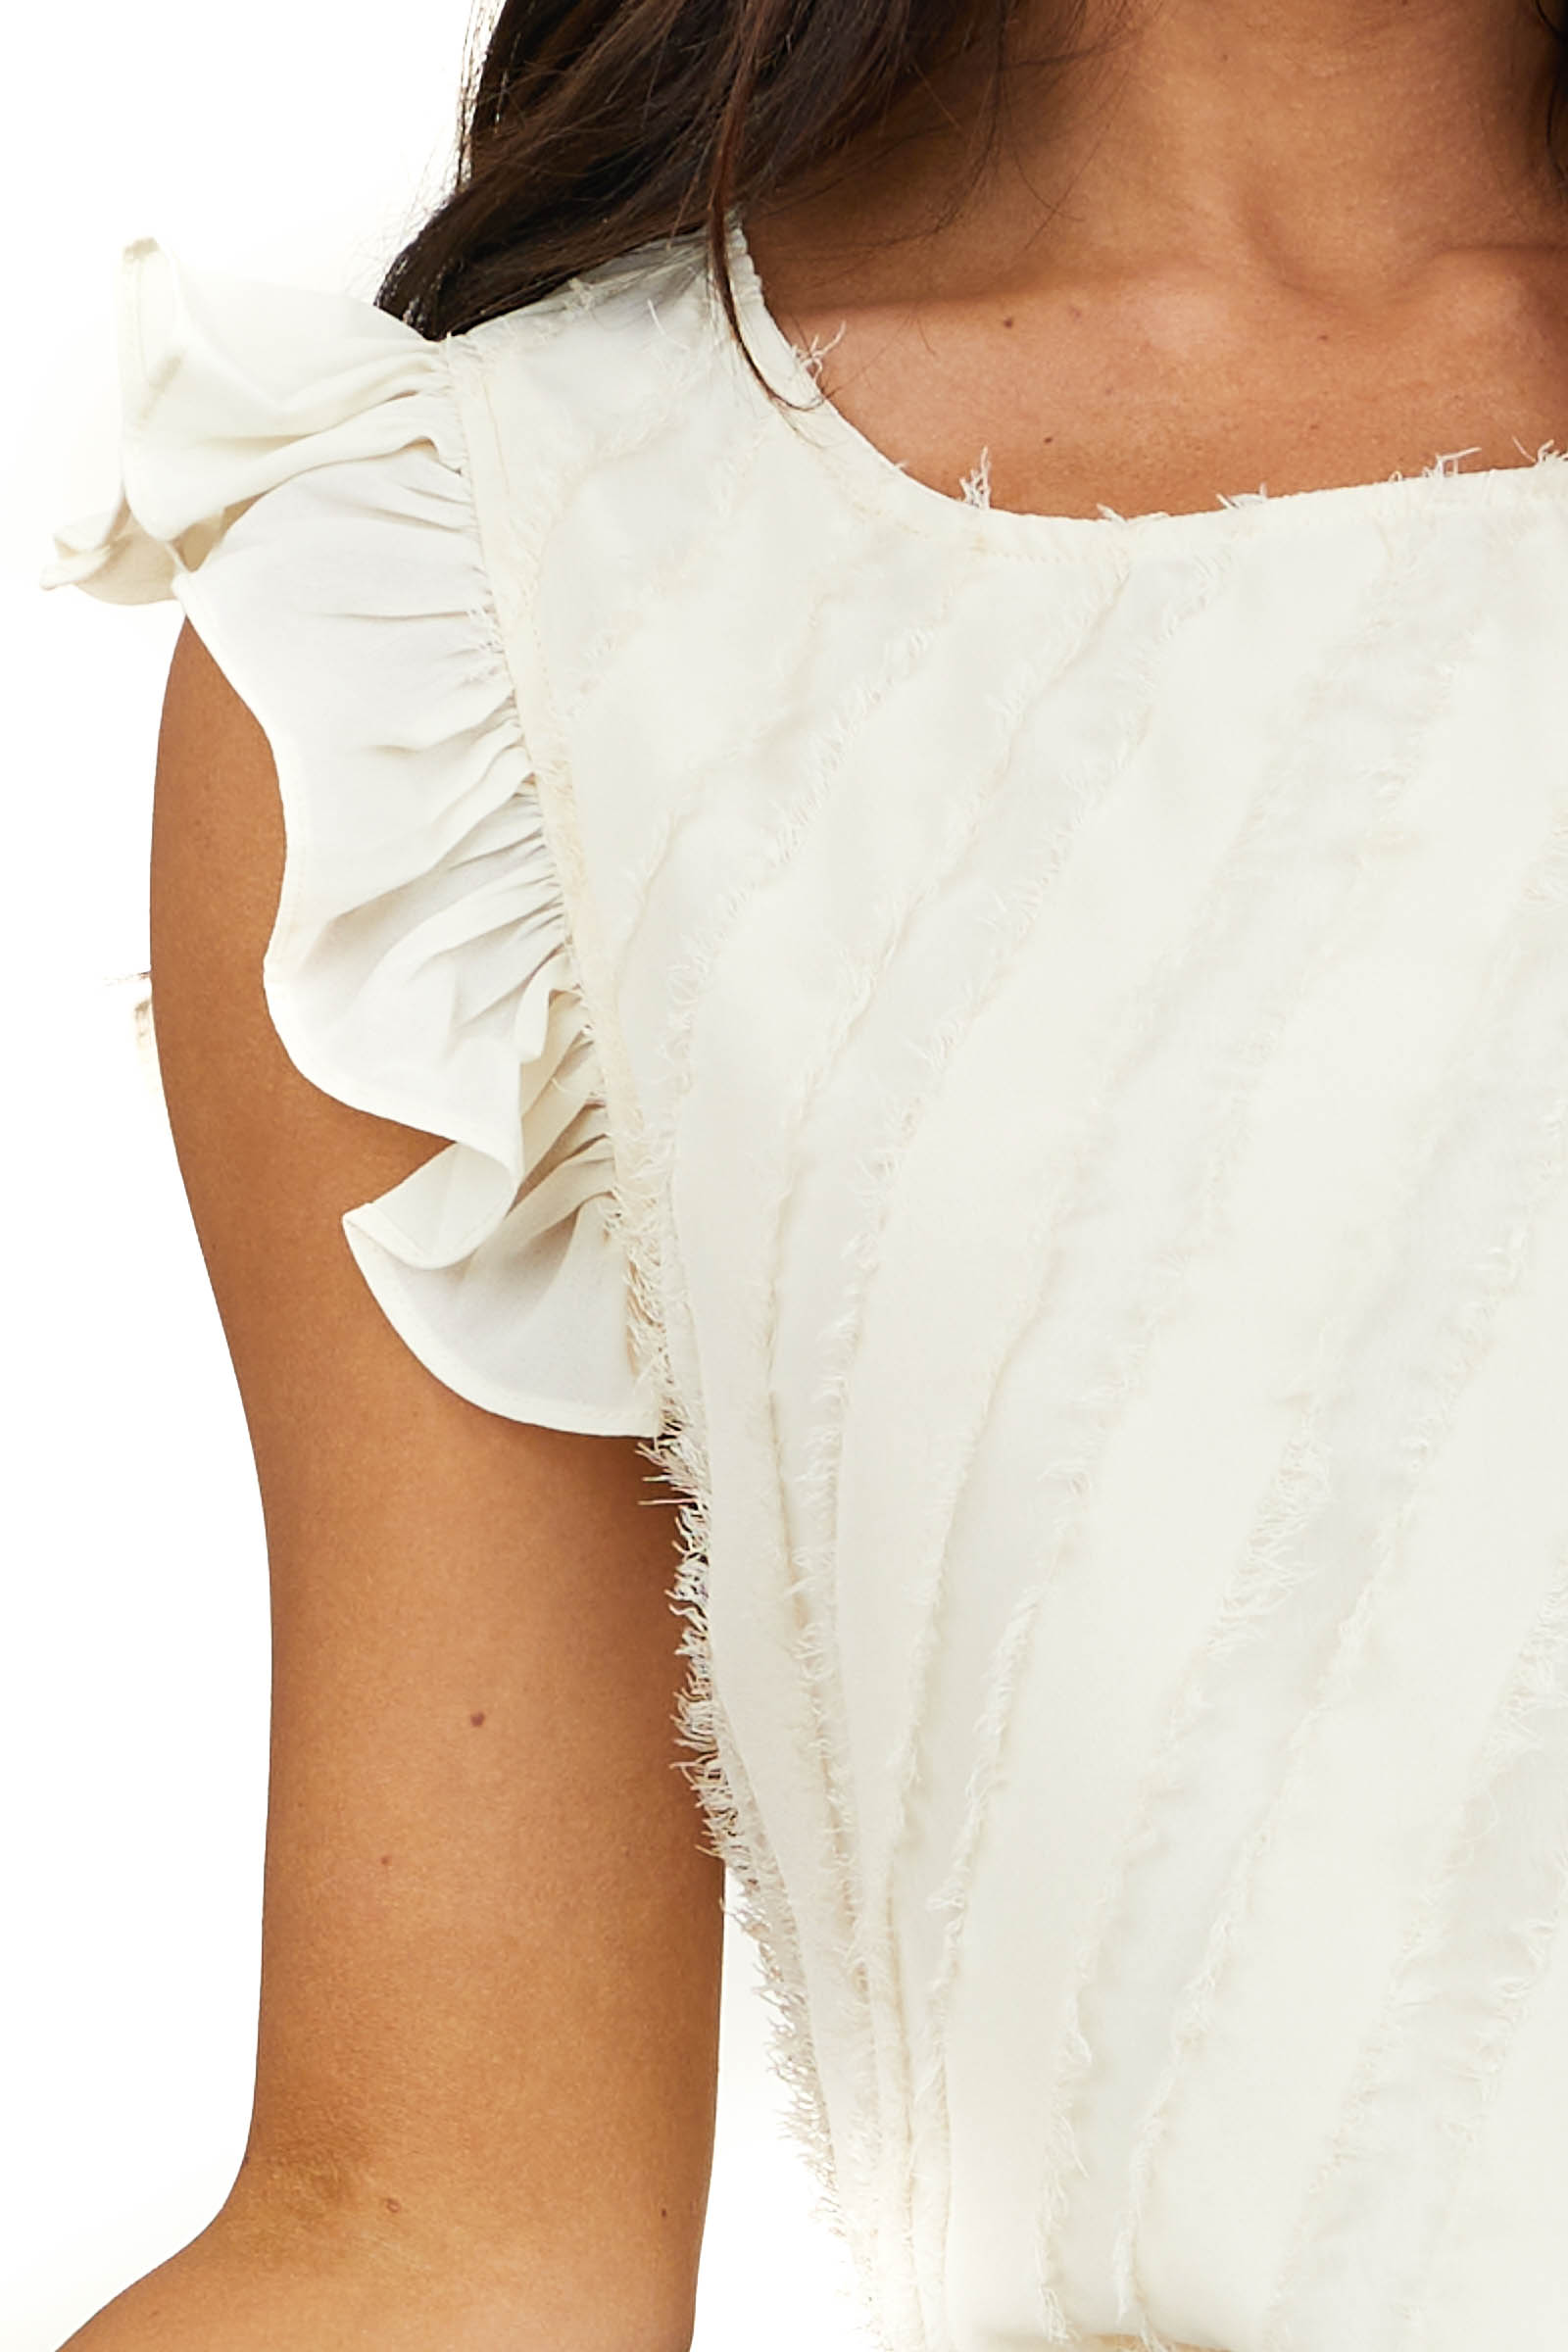 Champagne Ruffle Short Sleeve Woven Top with Fringe Details